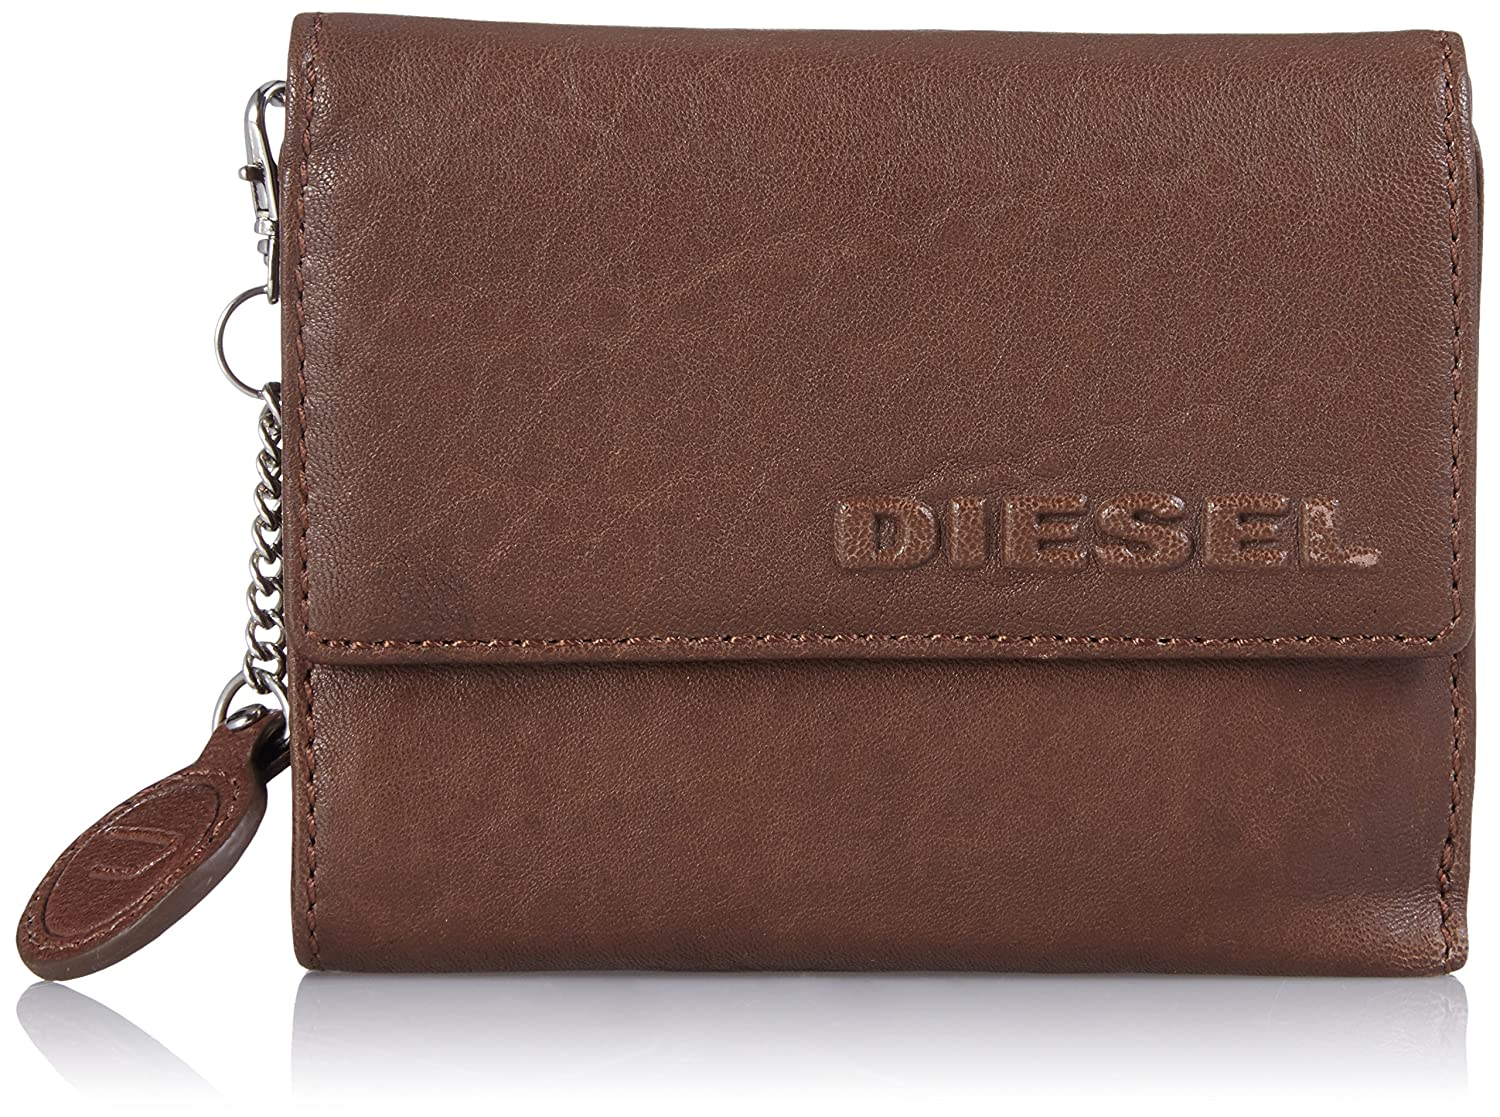 Diesel Monedero, Rojo (Rojo) - 00XC31PR427red: Amazon.es ...